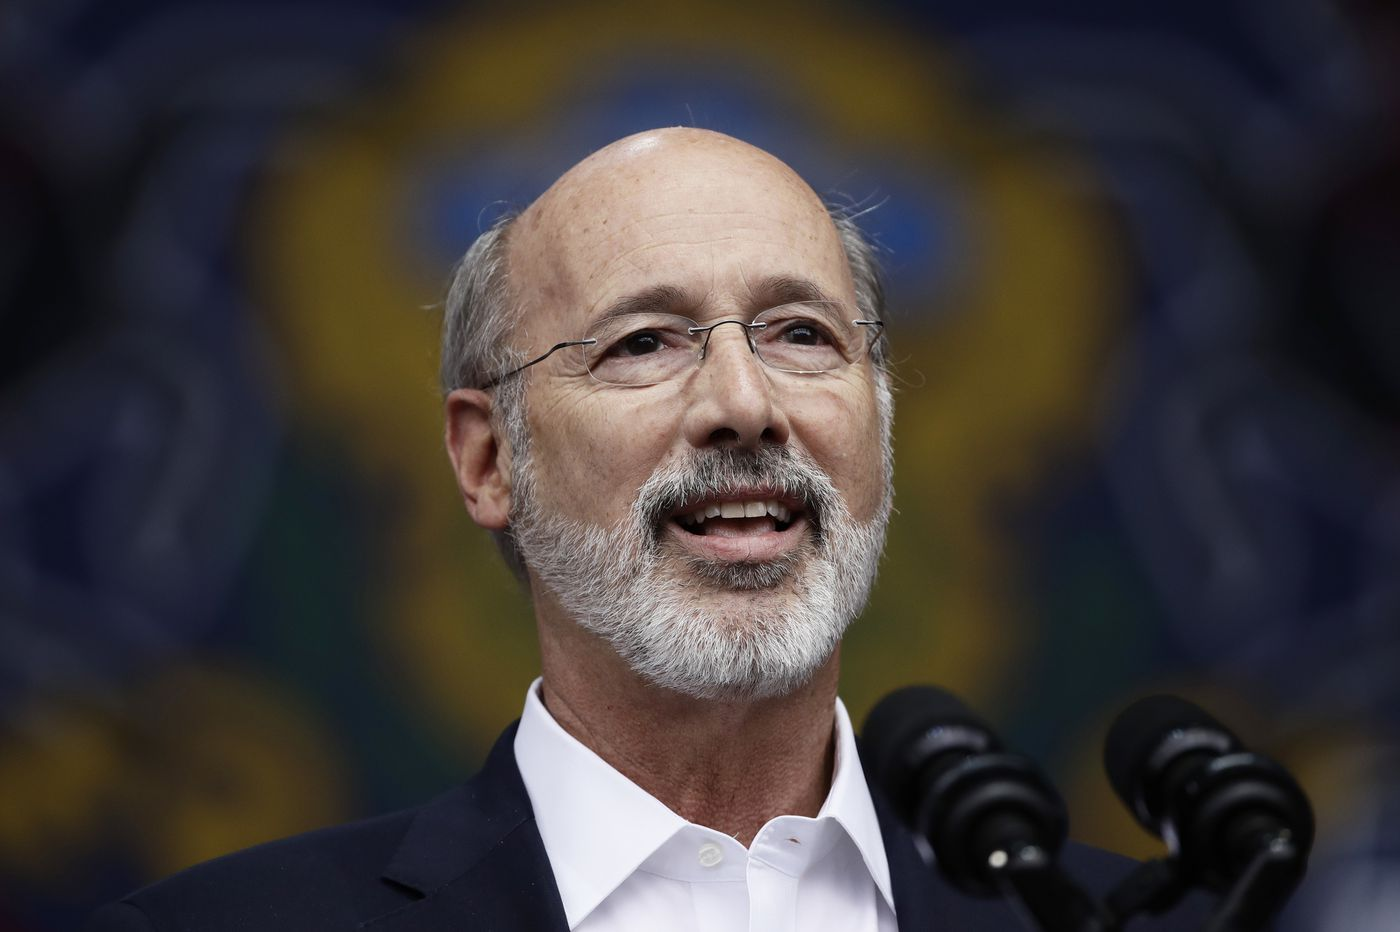 About the things Gov. Wolf takes credit for | John Baer